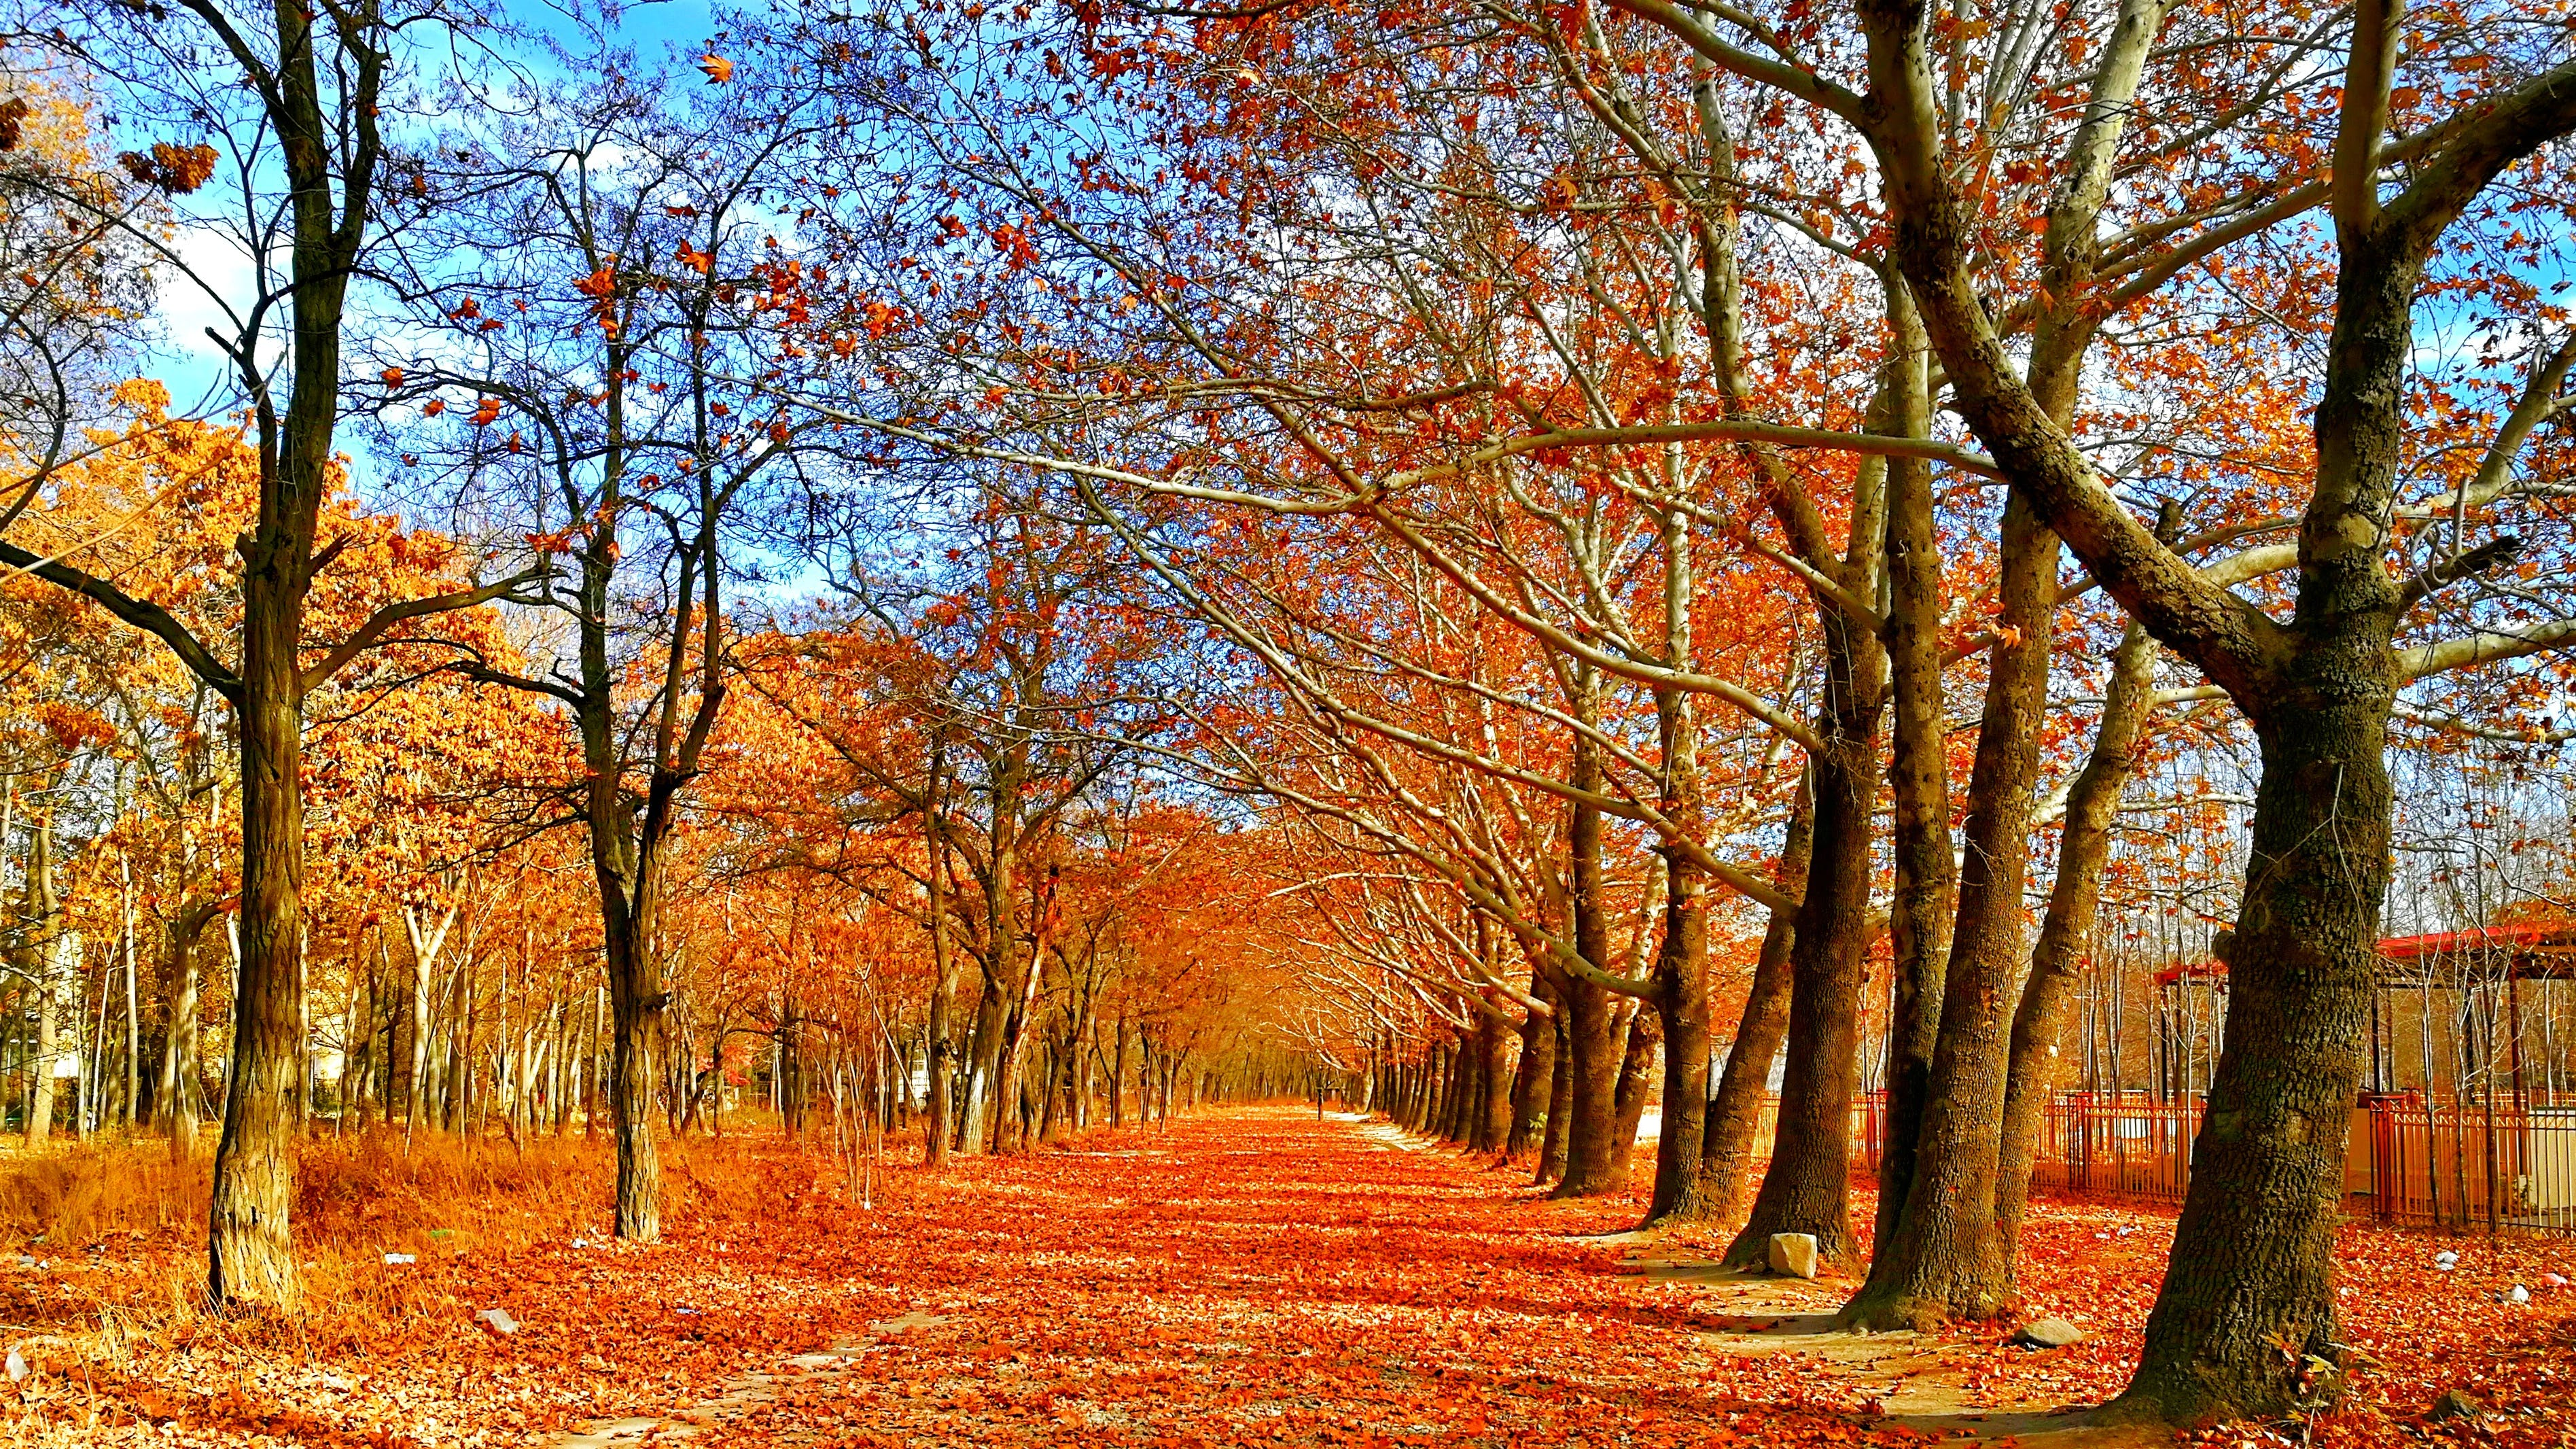 Pave Covered on Red Leaf Between Trees